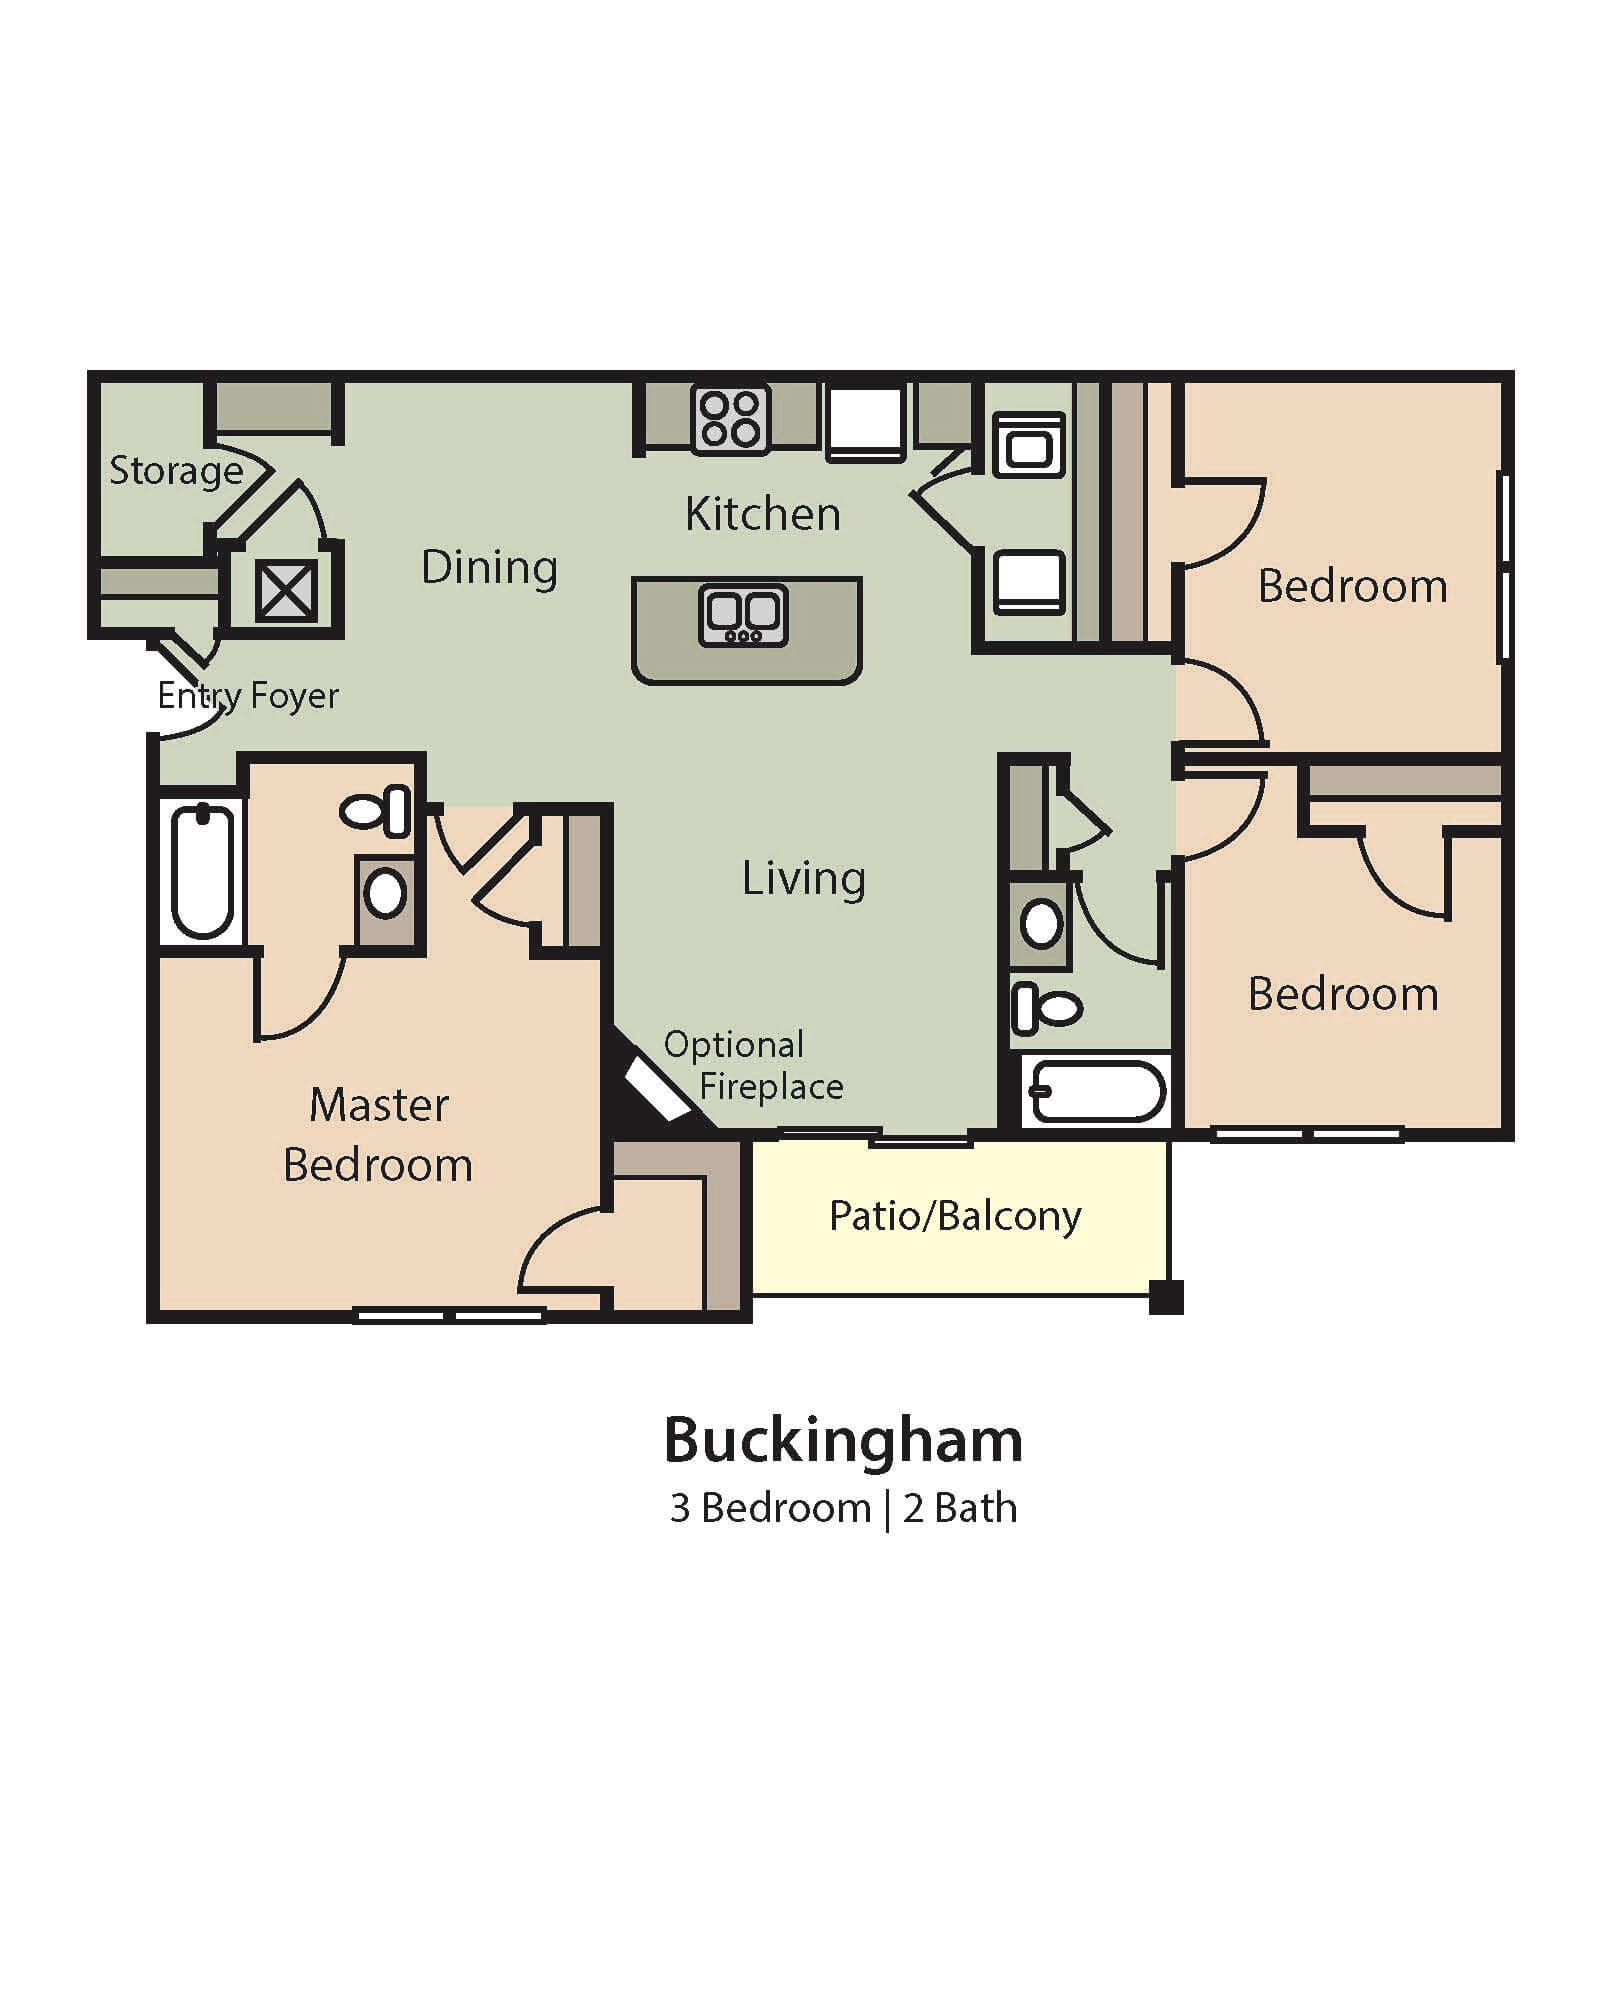 Buckingham 3 Bedroom 2 Bath floor plan